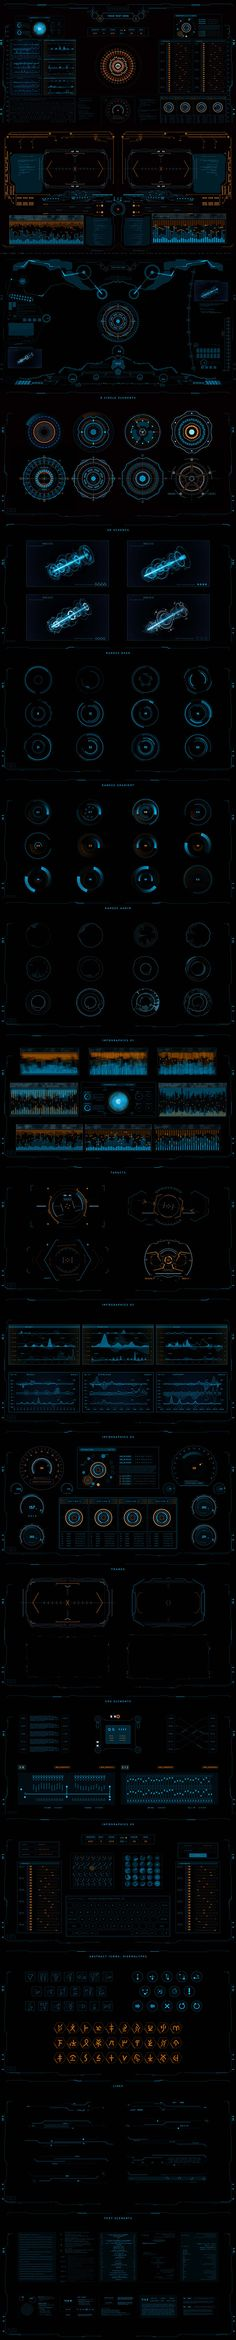 250 HUD SCI-FI 1.1./ FREE UPDATEPerfect for sci-fi teasers and trailers, small-scale films, broadcast design. This packaged collection of UI elements makes it quick and easy for you to take control...